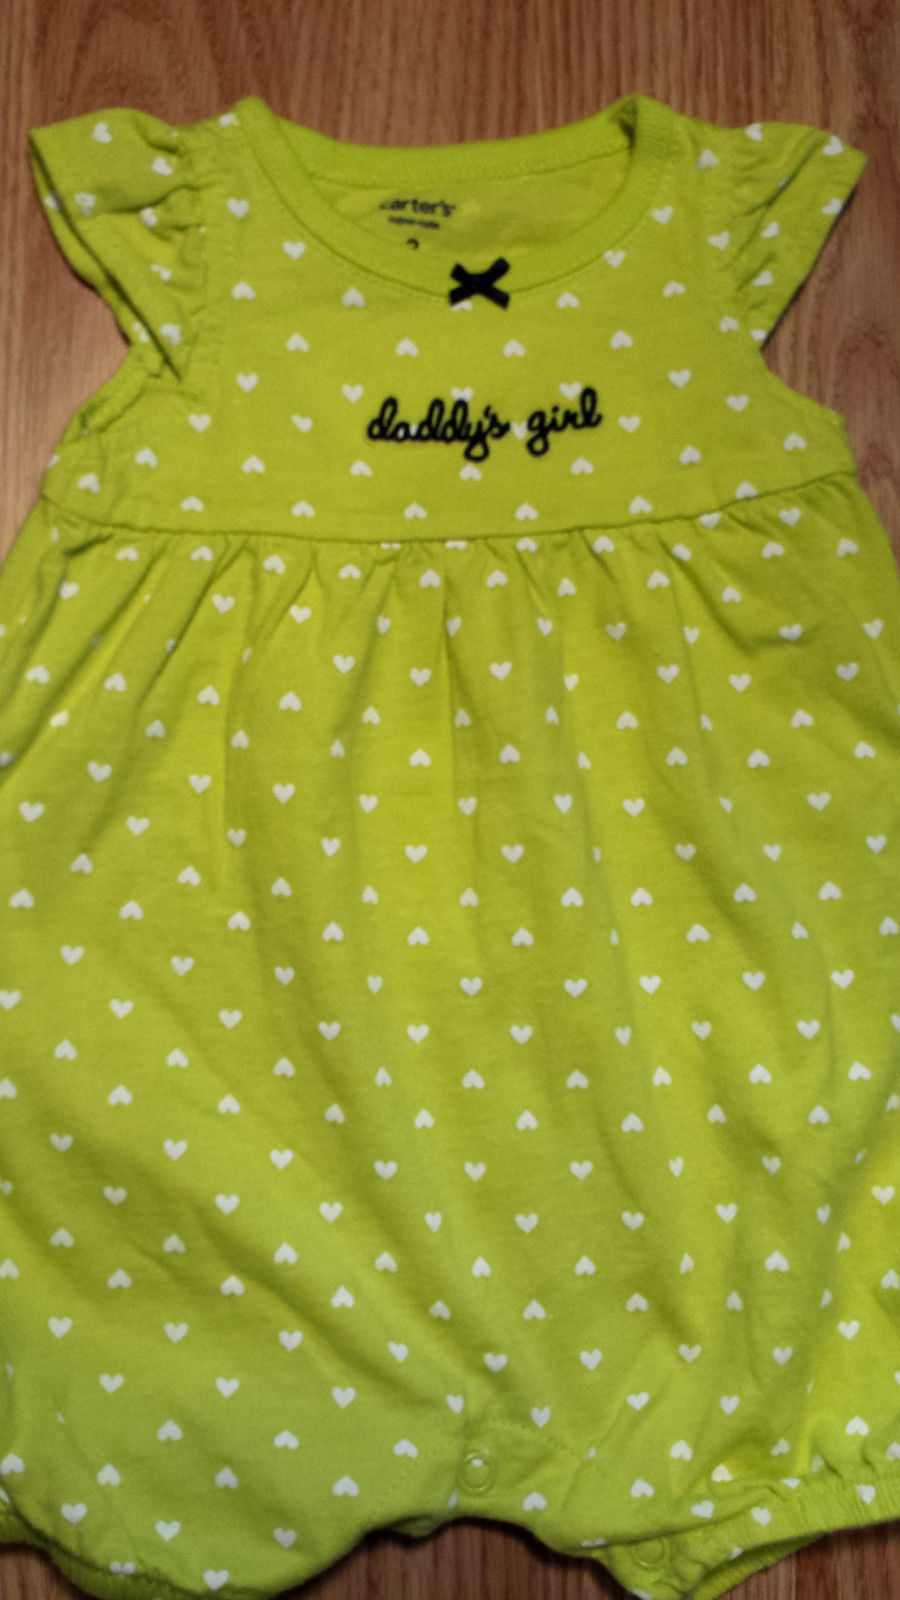 """Girl's Size 3 M 0-3 Months One Piece Carter's Green Heart """"Daddy's Girl"""" Romper"""